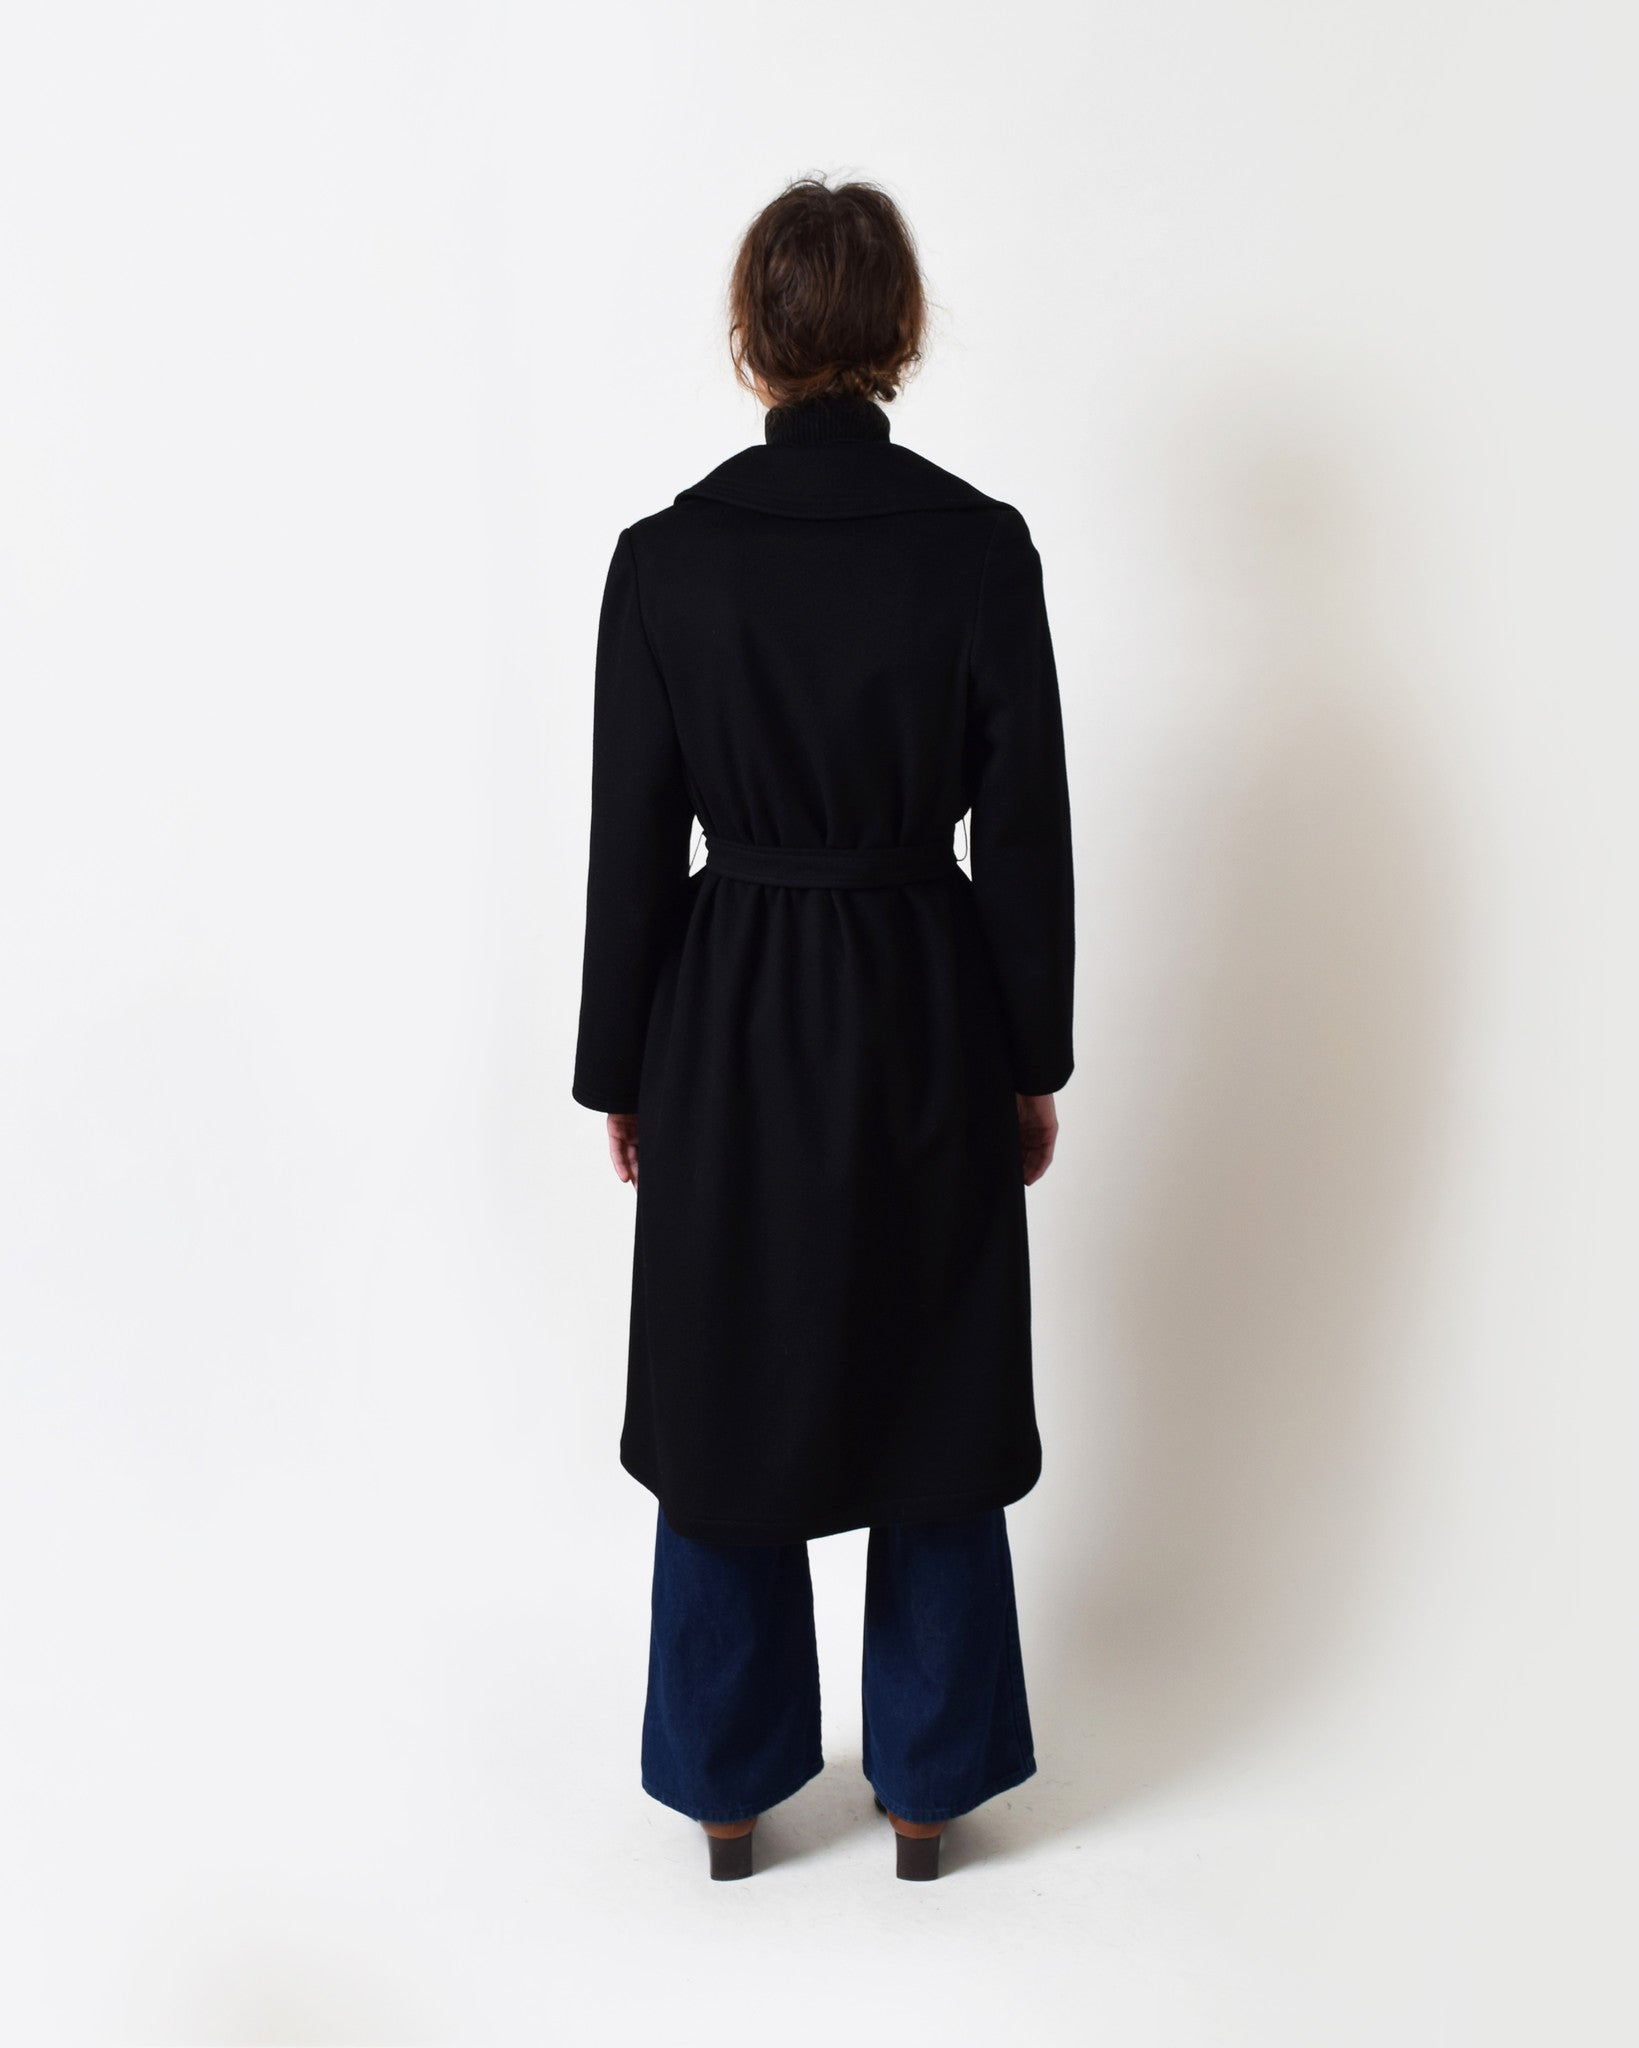 Vintage 1970s Black Robe Coat